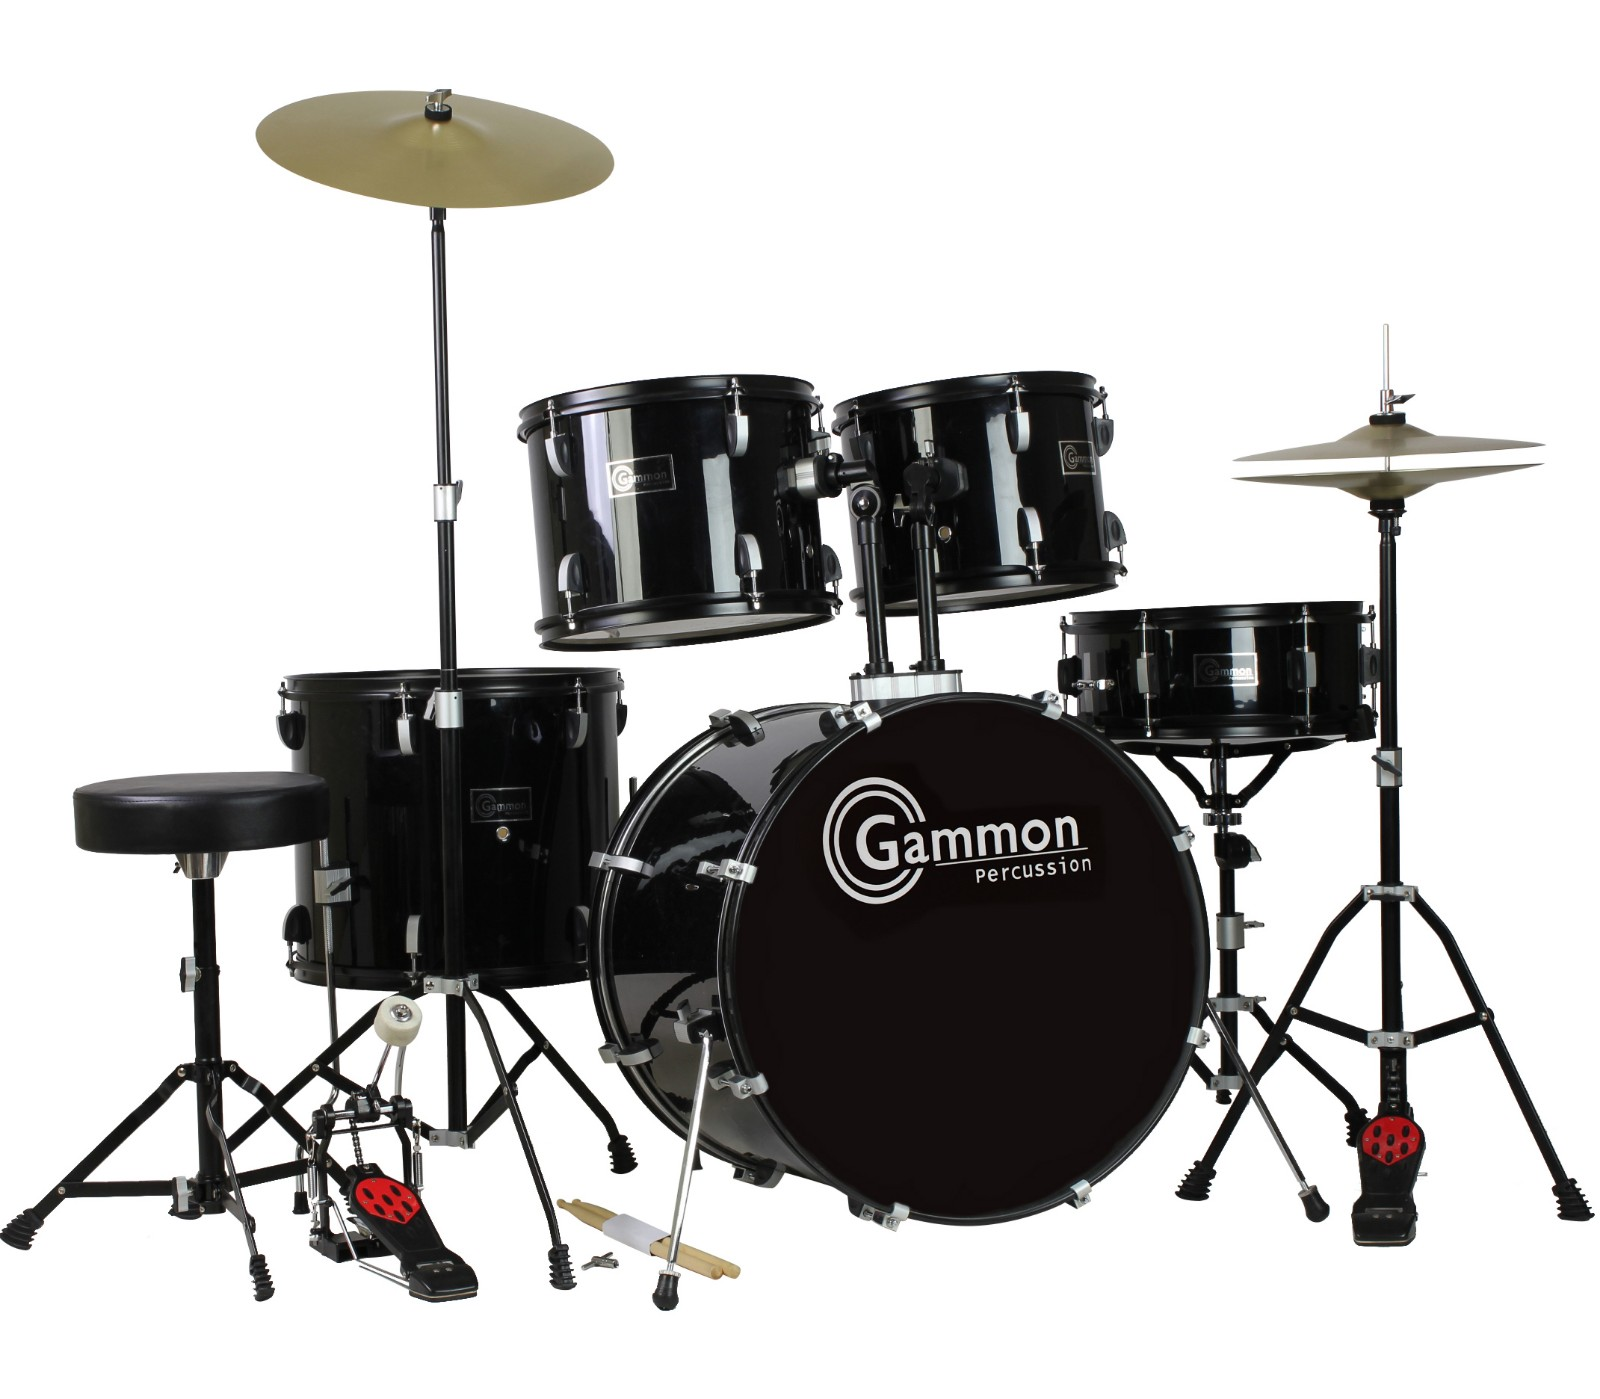 Gammon Drum Set Black Complete Full Size Adult Kit With Cymbals Sticks Hardware And Stool by